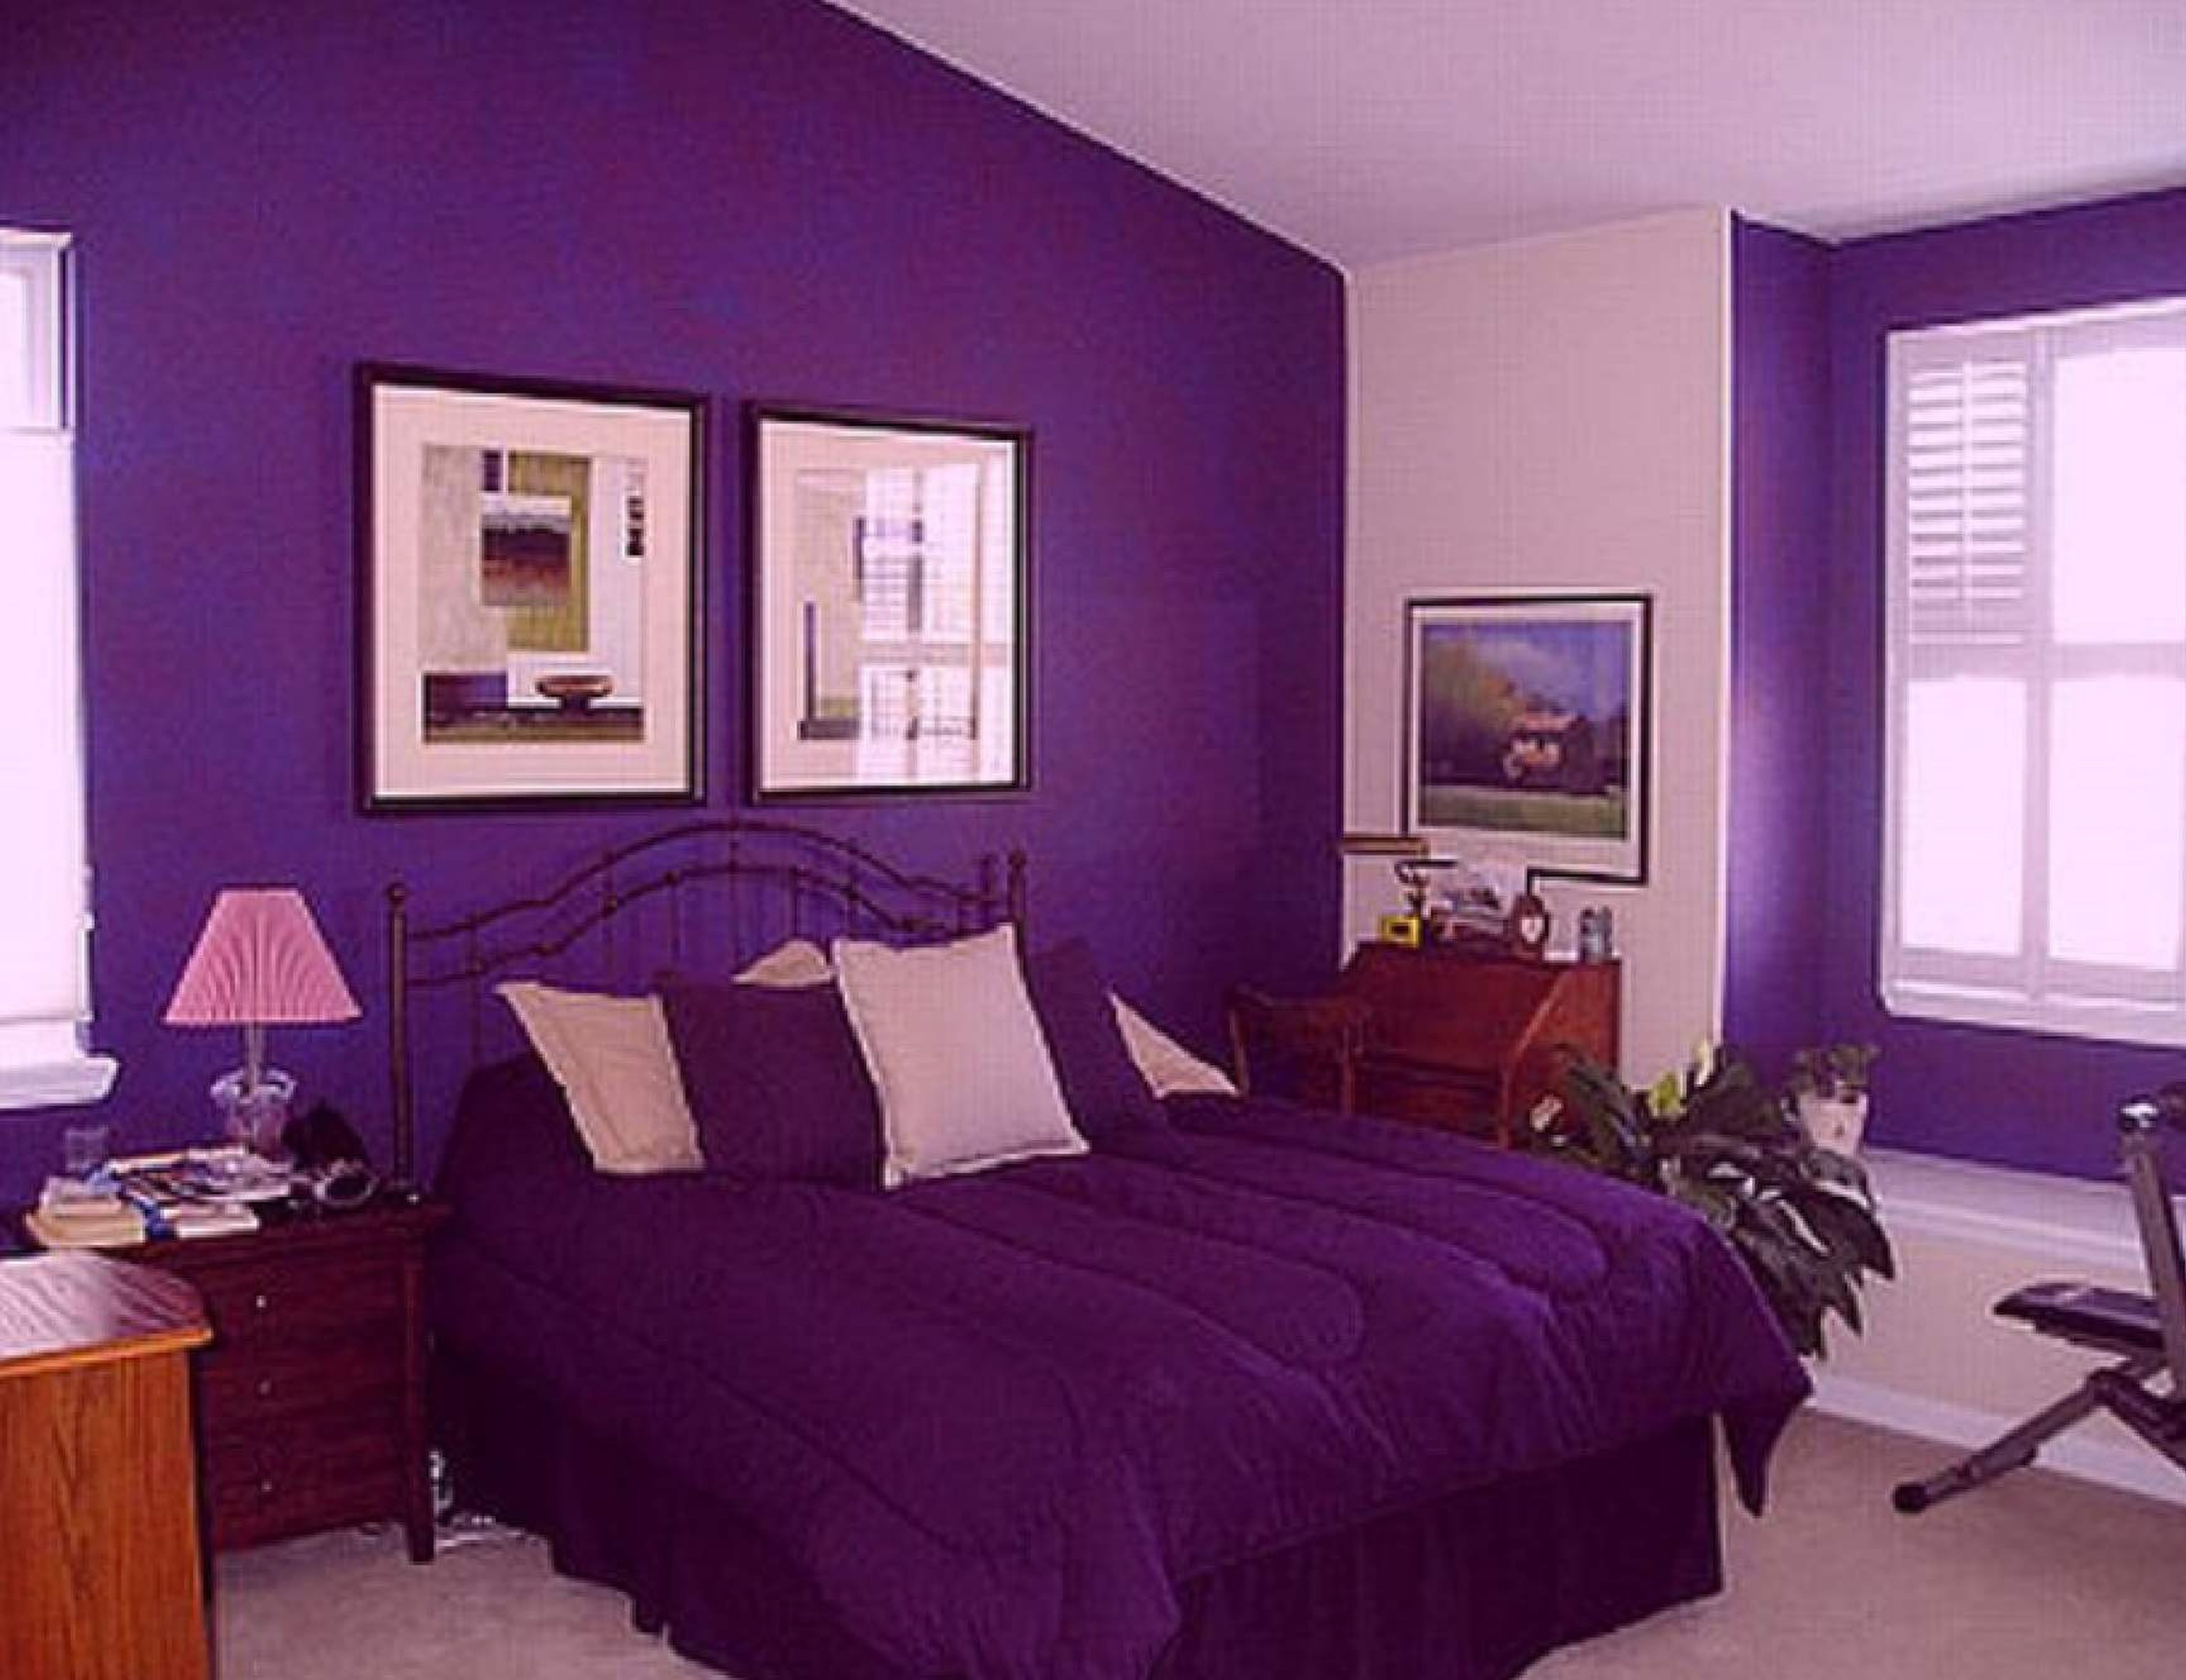 Appealing Black Iron King Bed Frames With Purple Cover Bedding